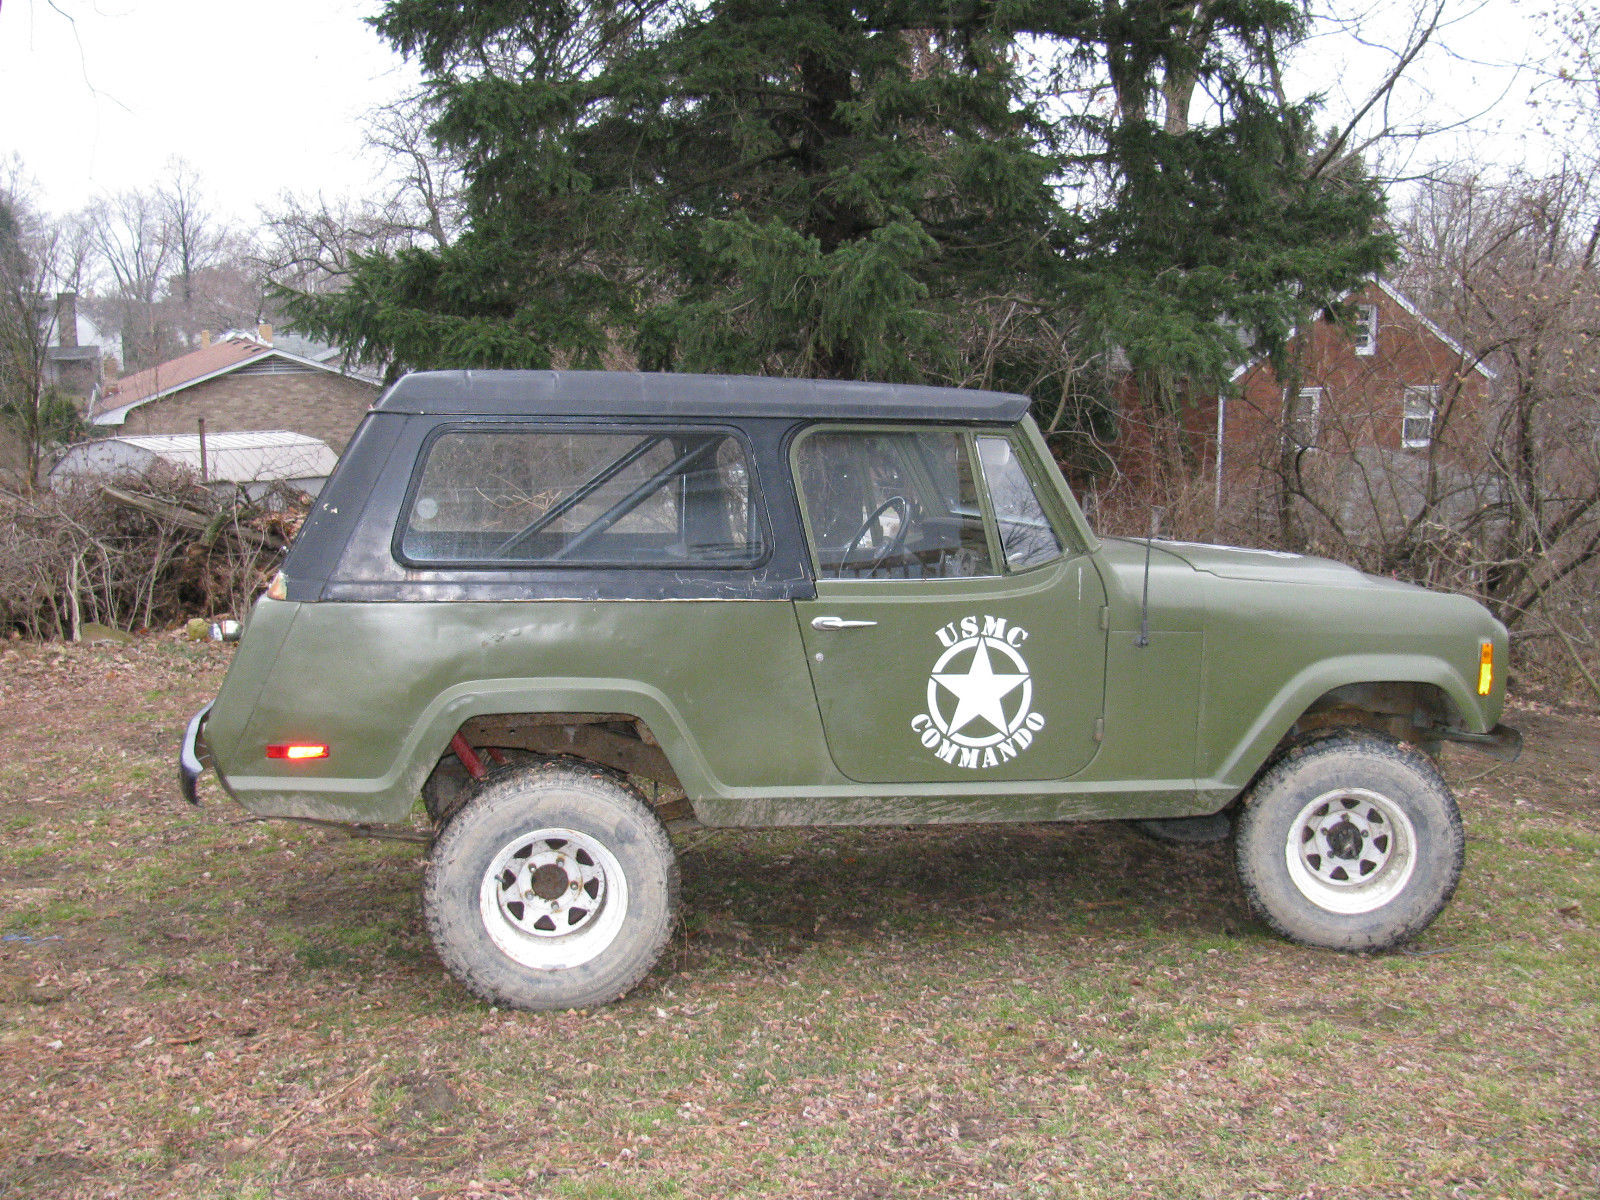 1972 Jeep Commando hard top